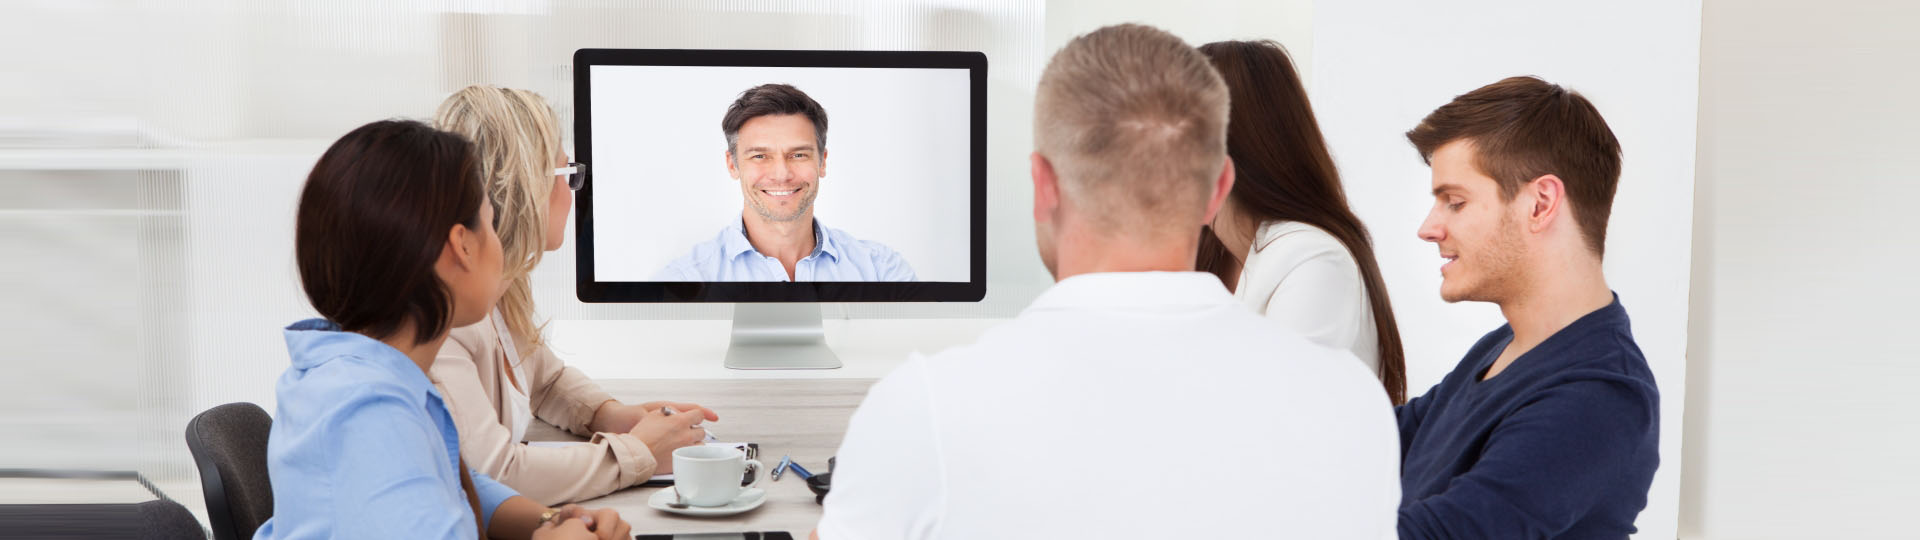 Video Conference at Lane End Conference Facilities